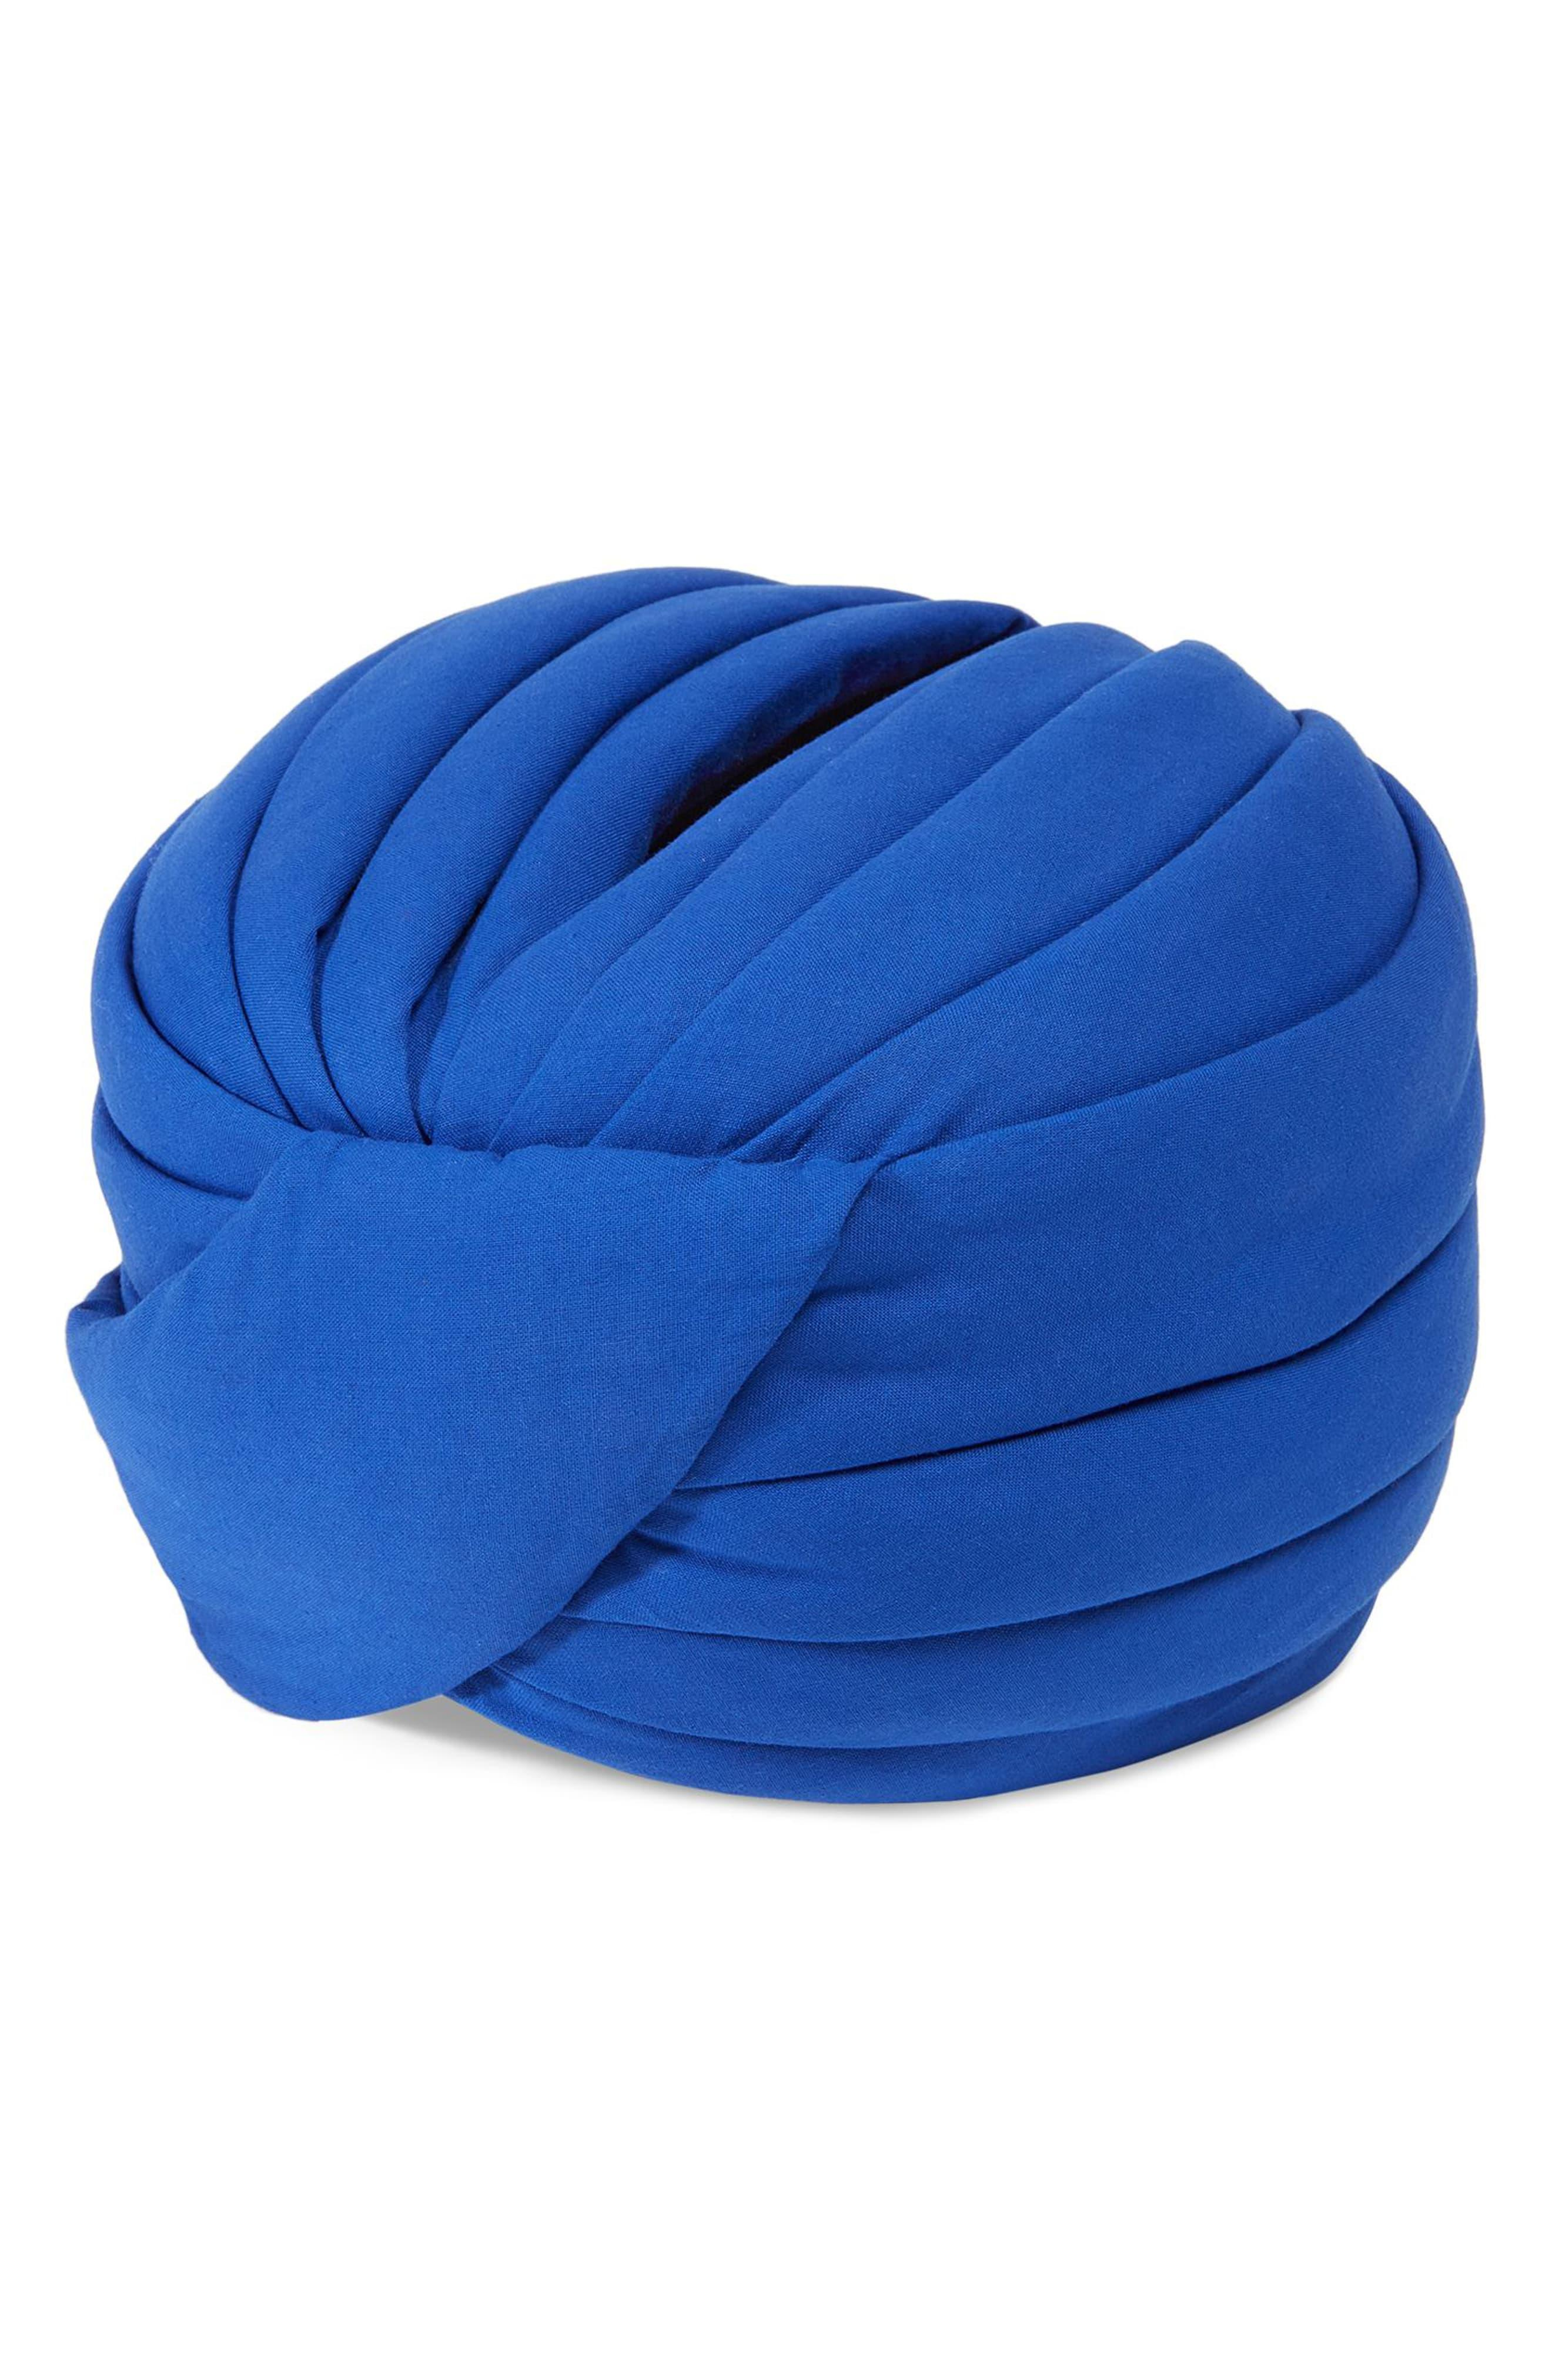 73e6d246 Gucci Indy Full Turban in Blue - Lyst